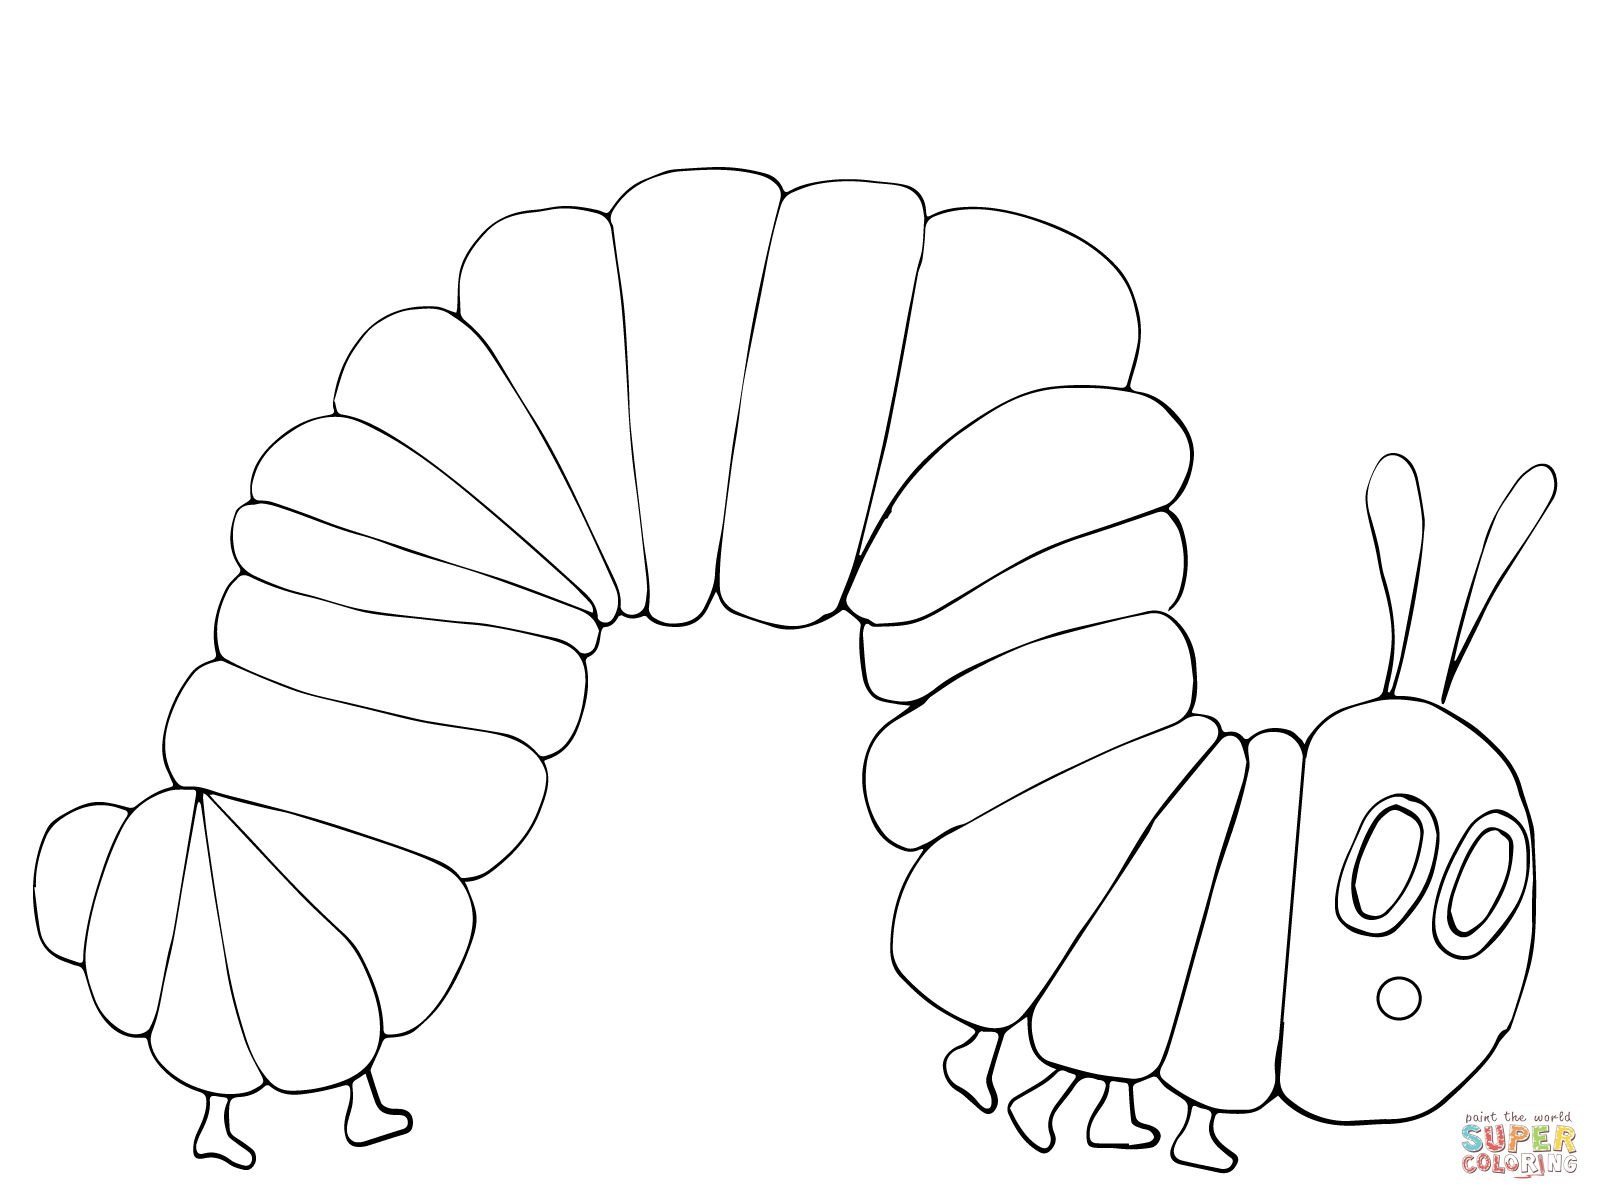 Butterfly cocoon coloring pages - Very Hungry Caterpillar Coloring Page Supercoloring Com